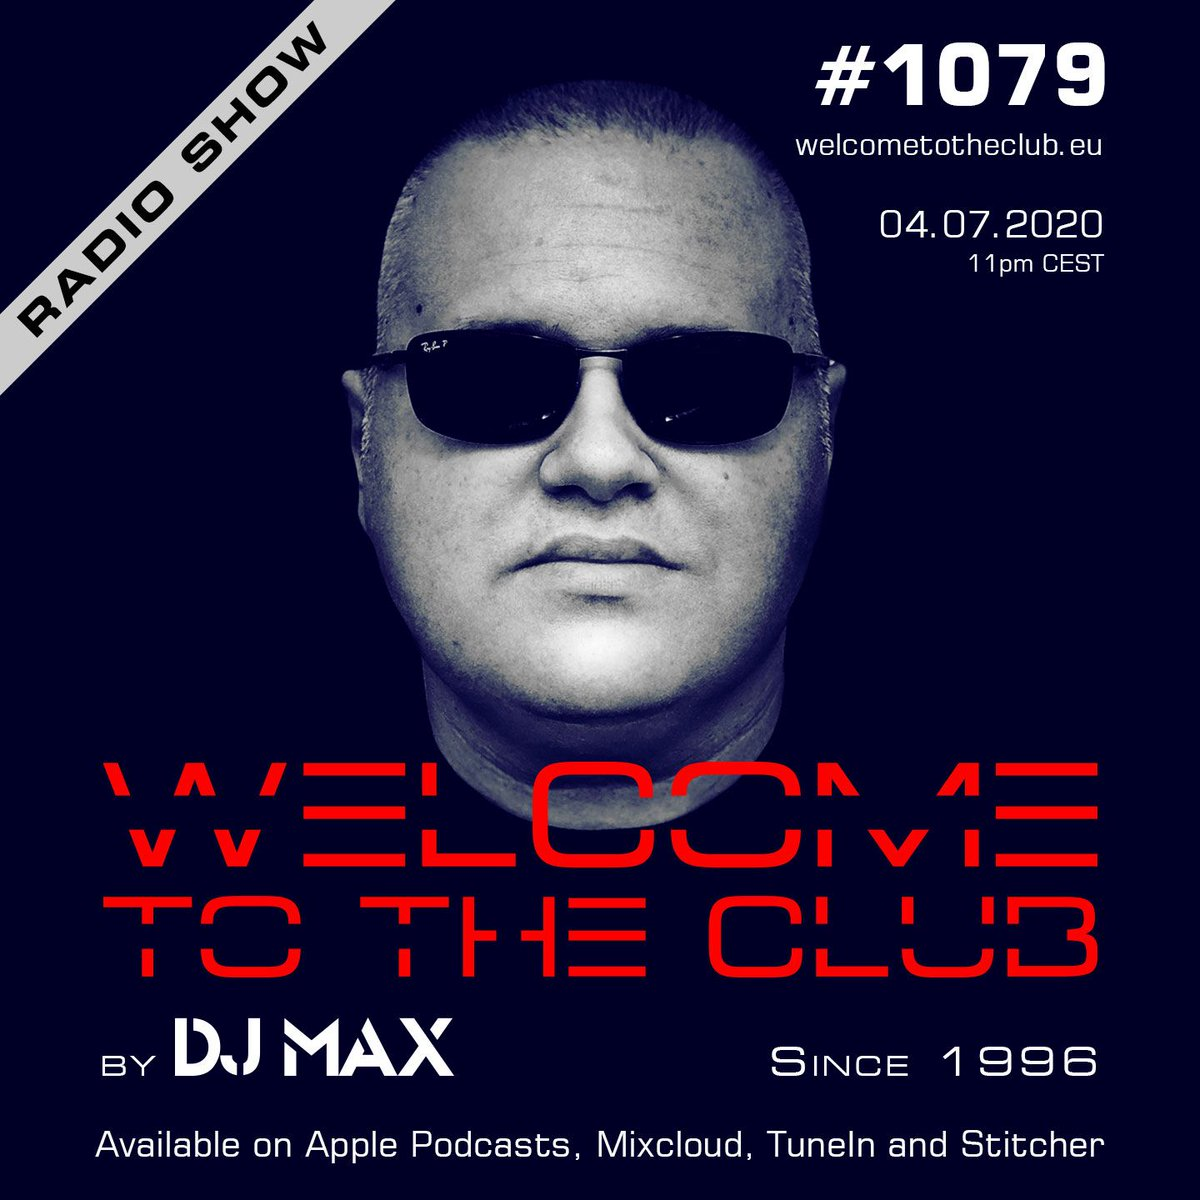 check out my Welcome To The Club #radioshow #1079 | premiered last Saturday  Link: https://buff.ly/2YZ8nS3   #welcometotheclub  #djmax #electronicmusic #house #techhouse #clubbing #djlife #dj #radio #producer #croatia #ibiza #amsterdam #italy #uk #usapic.twitter.com/C9xgU1WsIM